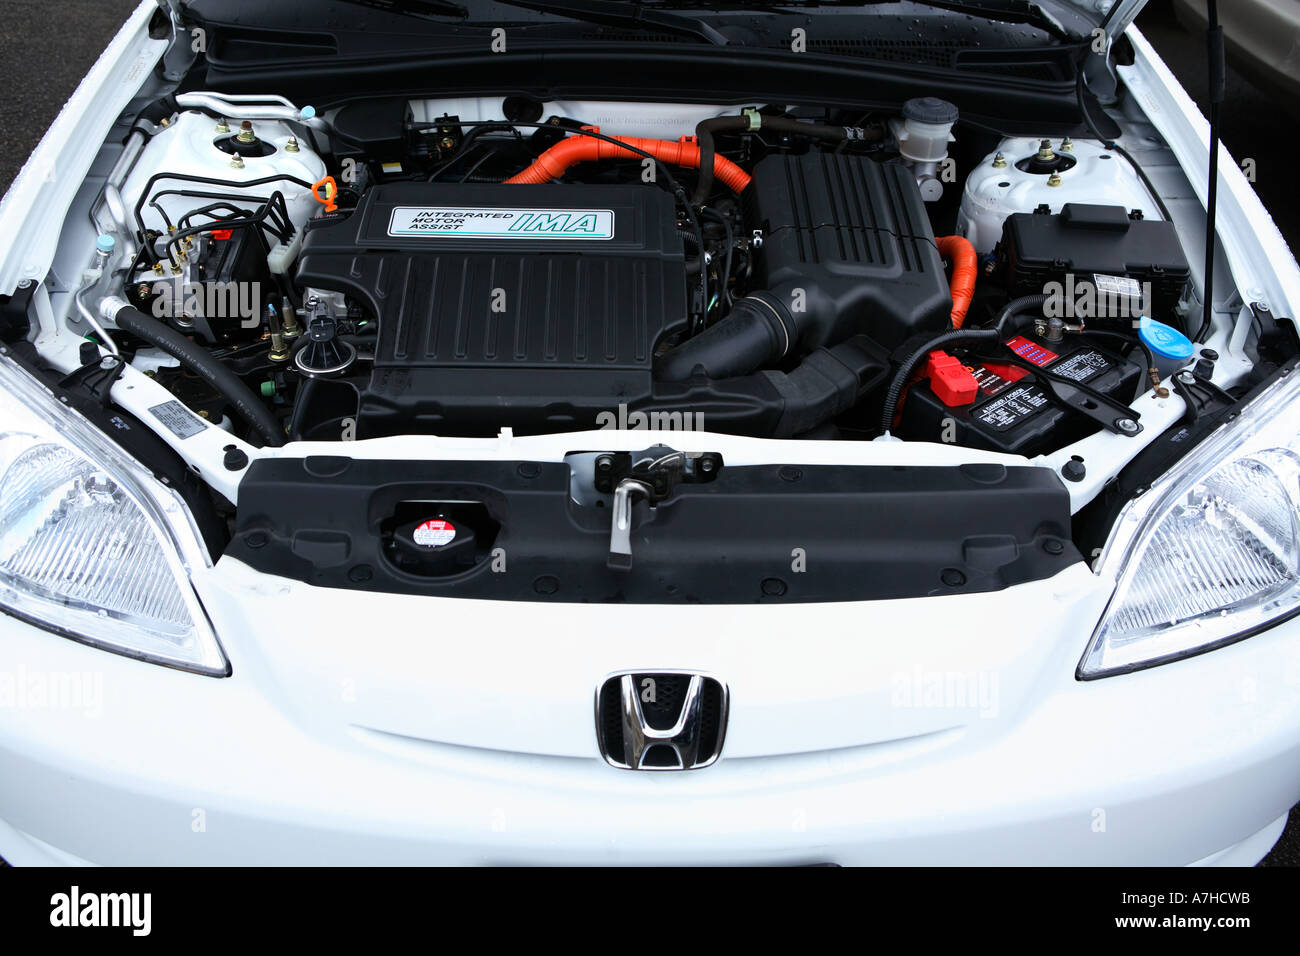 Under The Hood Of A 2003 Honda Civic Hybrid Car.   Stock Image